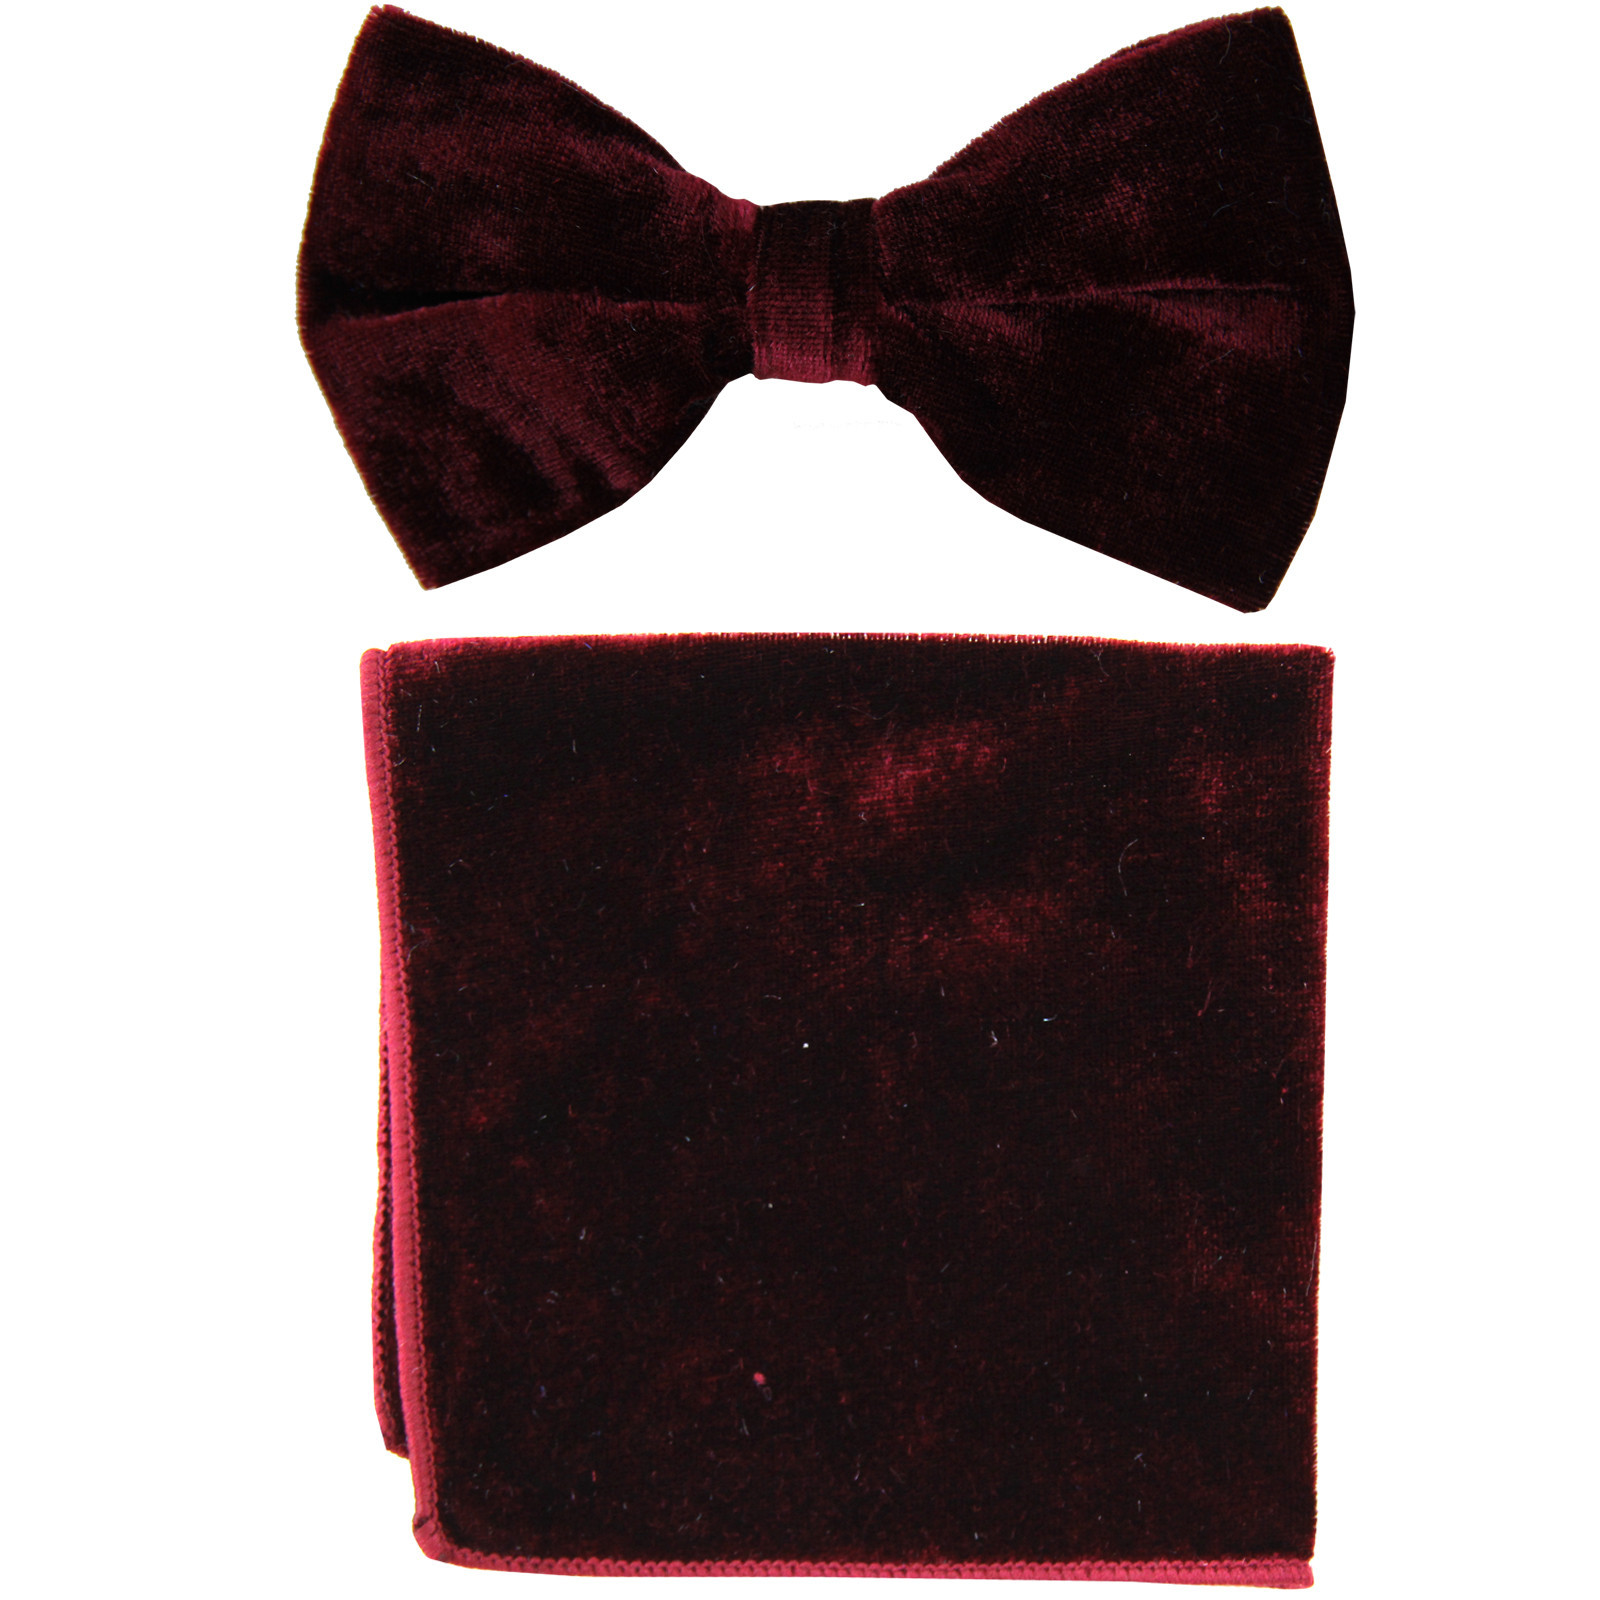 New formal men's pre tied Bow tie & Pocket Square Hankie Velvet  Burgundy